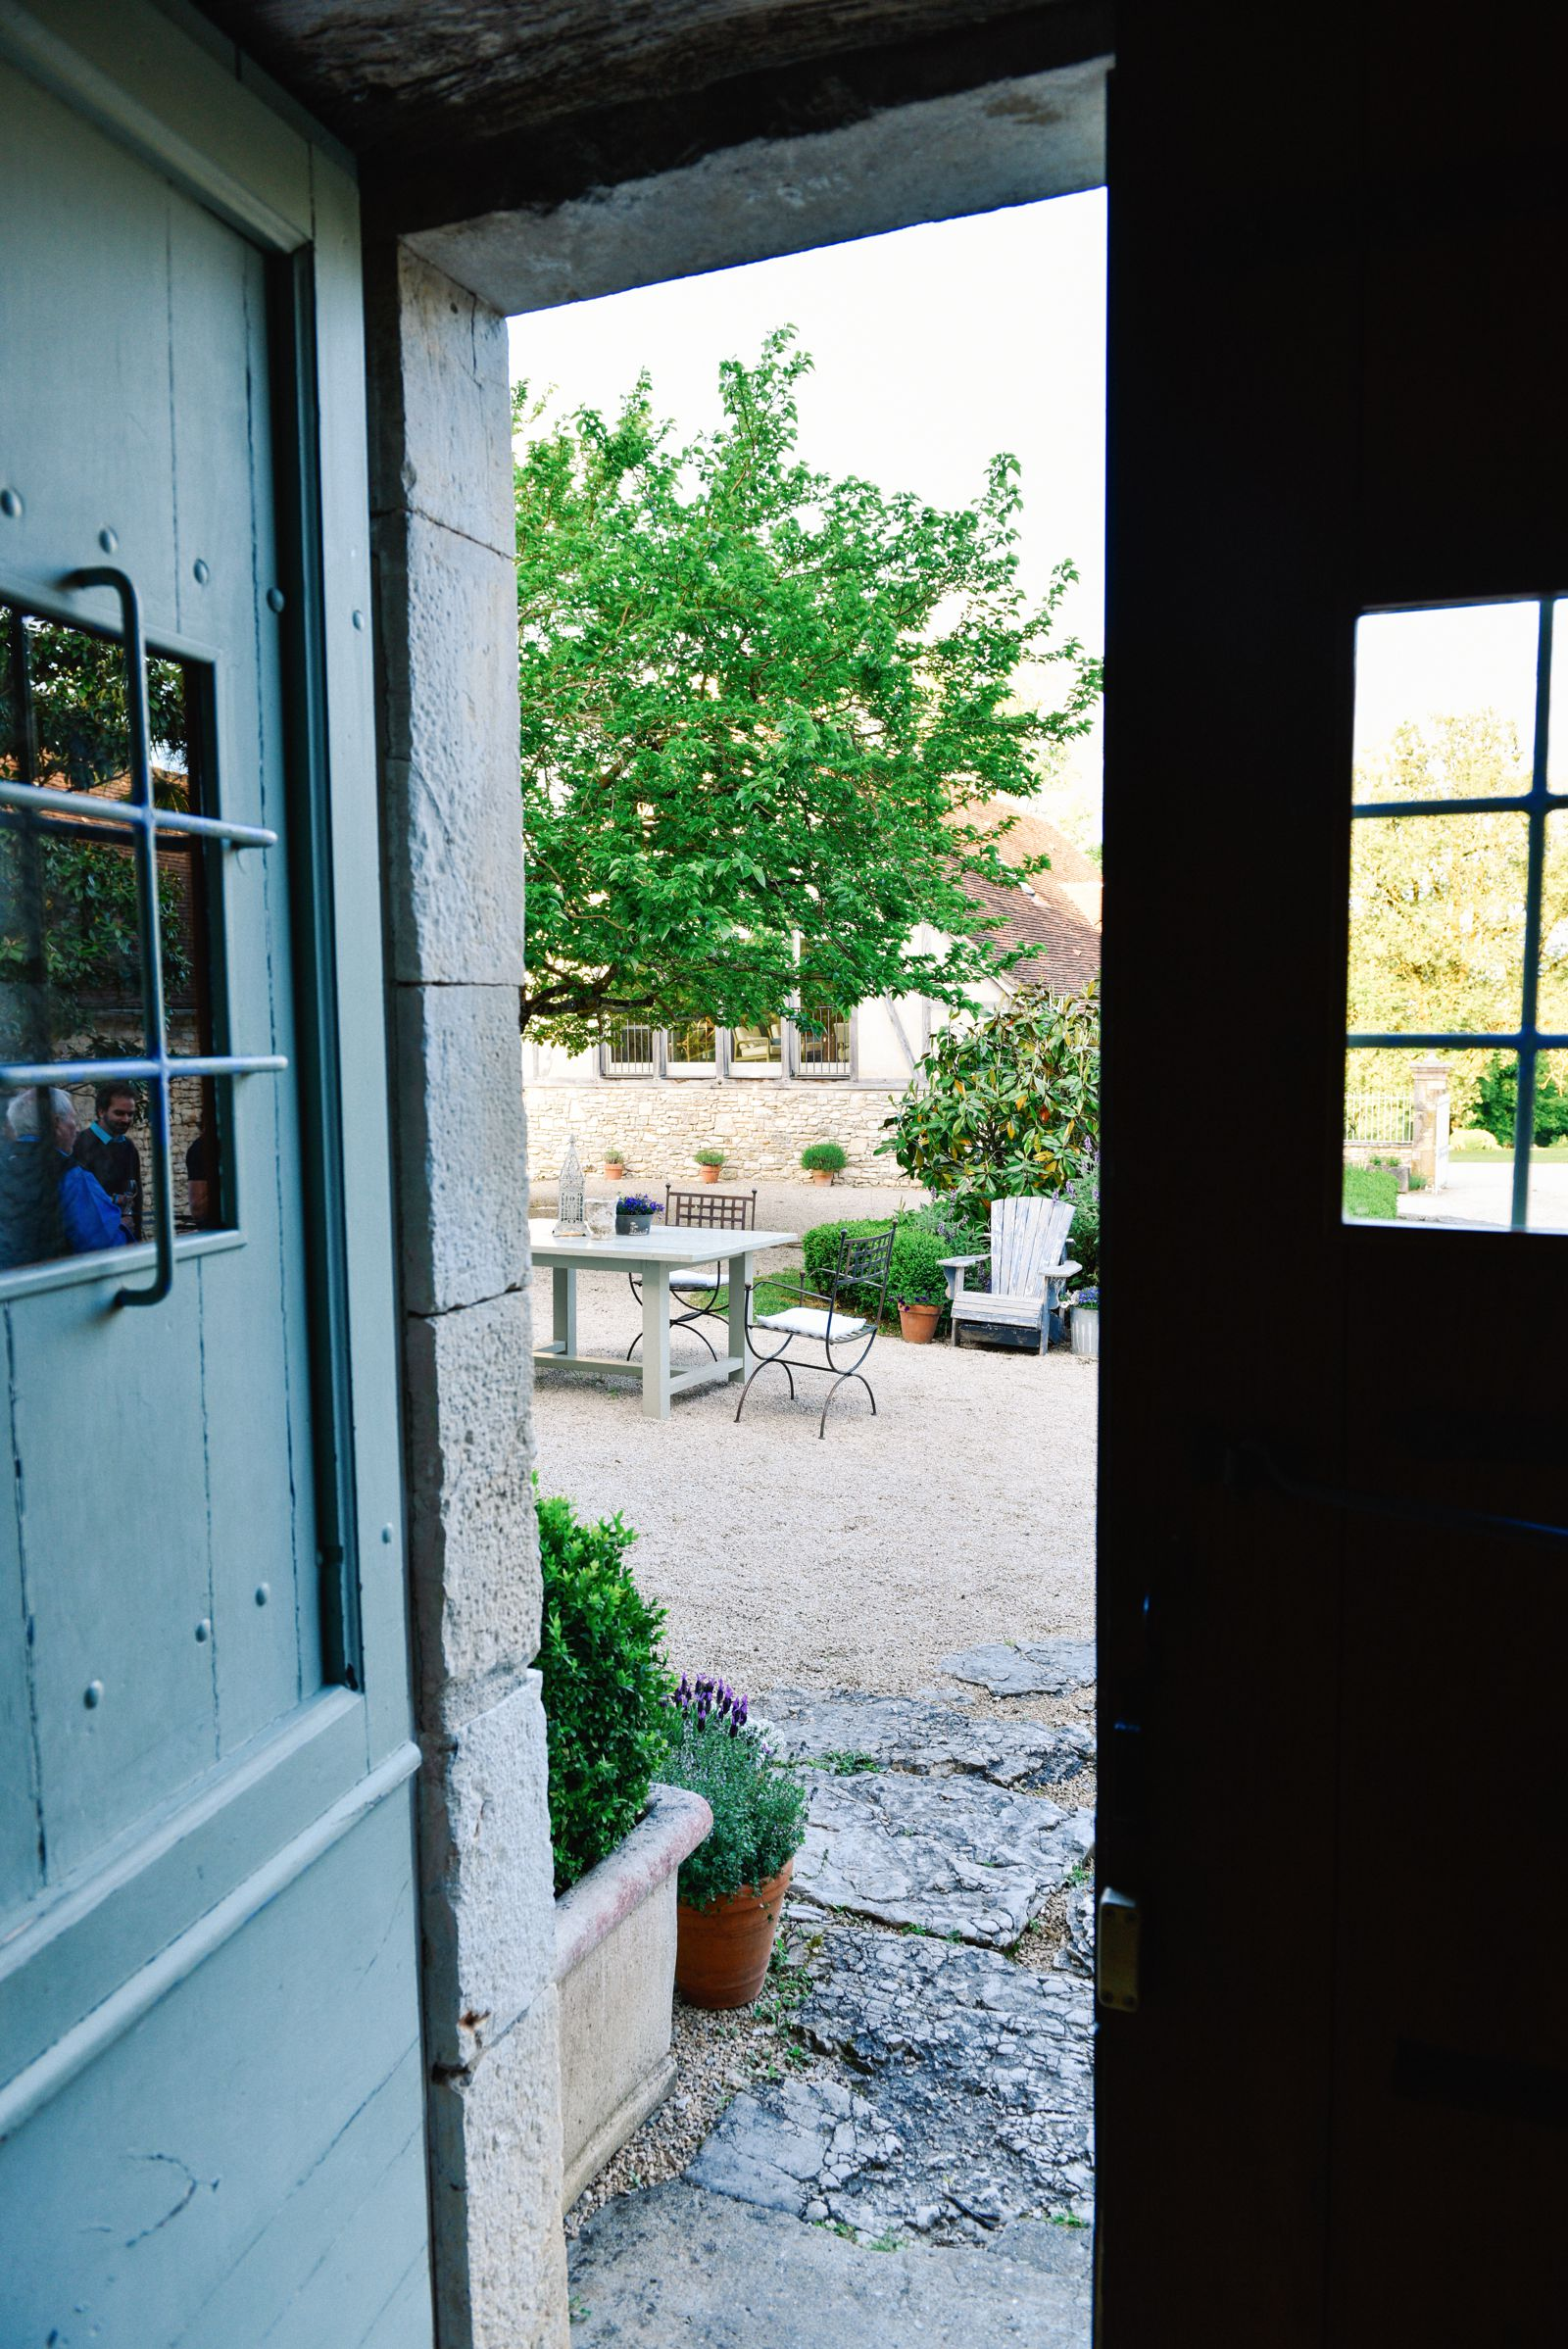 Truffle-Hunting, Chateau-Living And Wine-Tasting In the French Dordogne Valley (49)